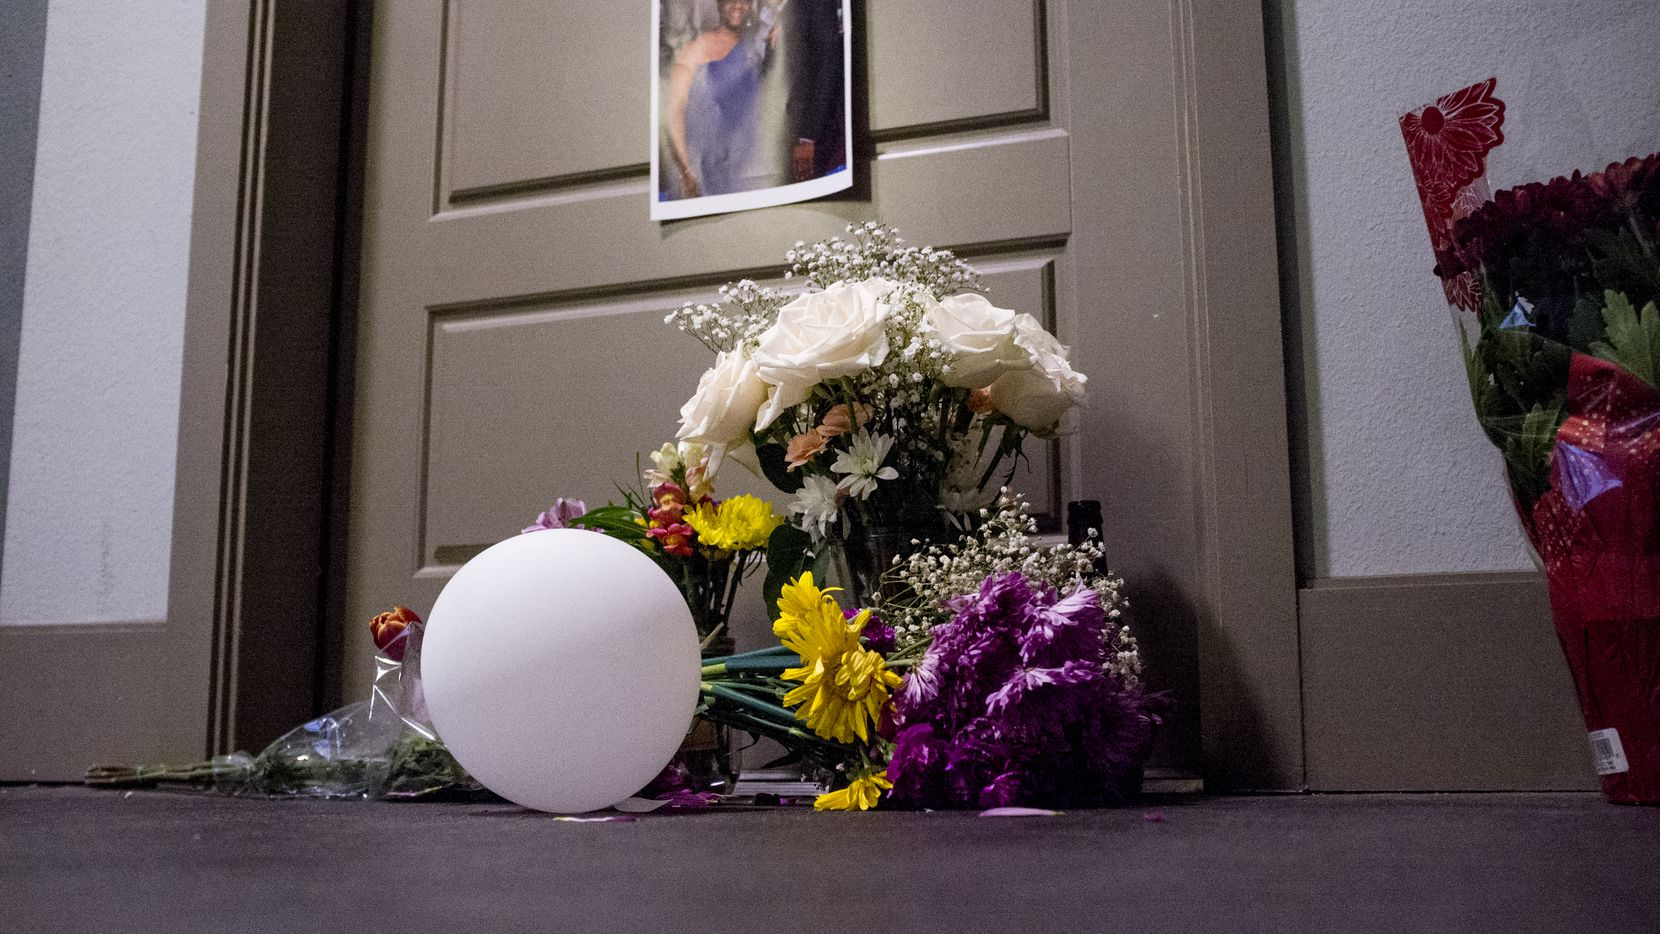 Flowers were placed at the front door apartment of Botham Jean on Sept. 10, 2018 in Dallas. Jean was shot by off-duty Dallas police officer Amber Guyger, who says she mistook his apartment for hers.